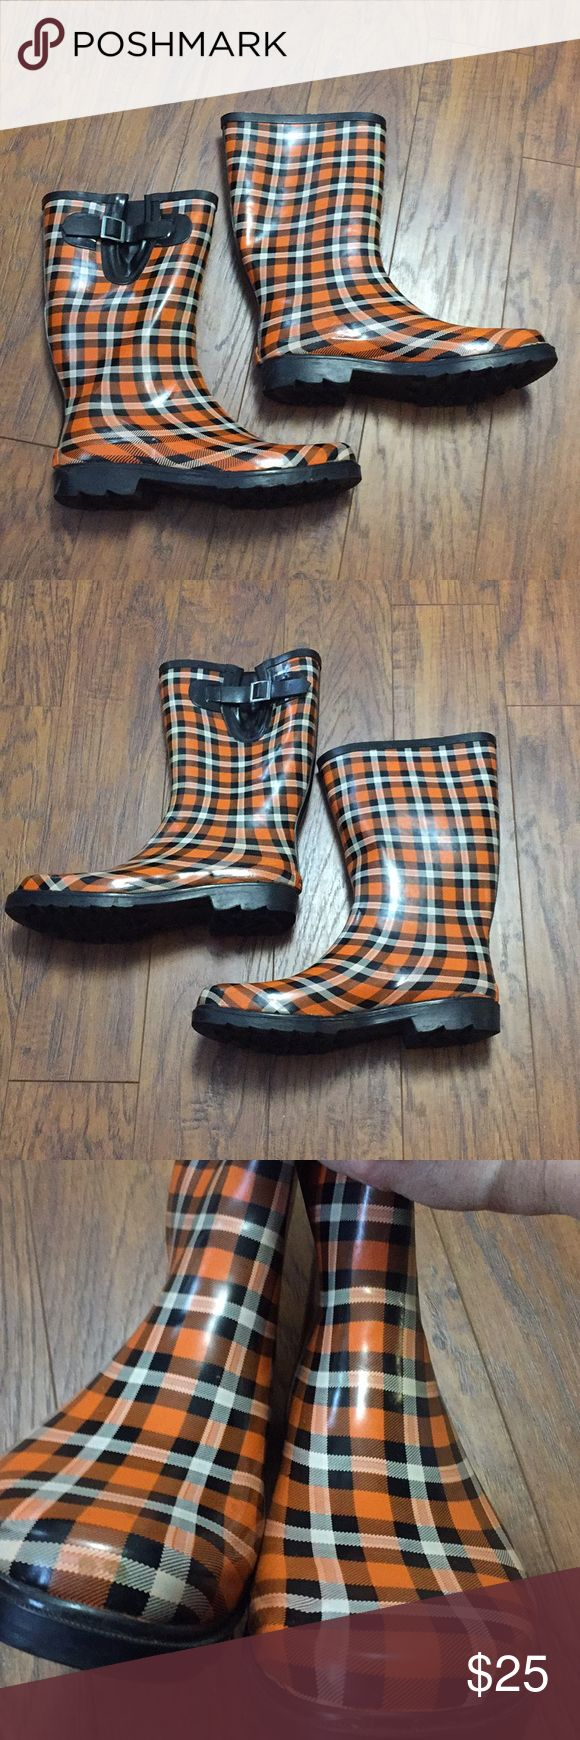 Rain boots OSU Oklahoma State Cowboys Plaid orange OSU Oklahoma State University rain boots in black and orange plaid.  These are Size 10 women's boots and show some signs of wear (pictured) OSU Shoes Winter & Rain Boots